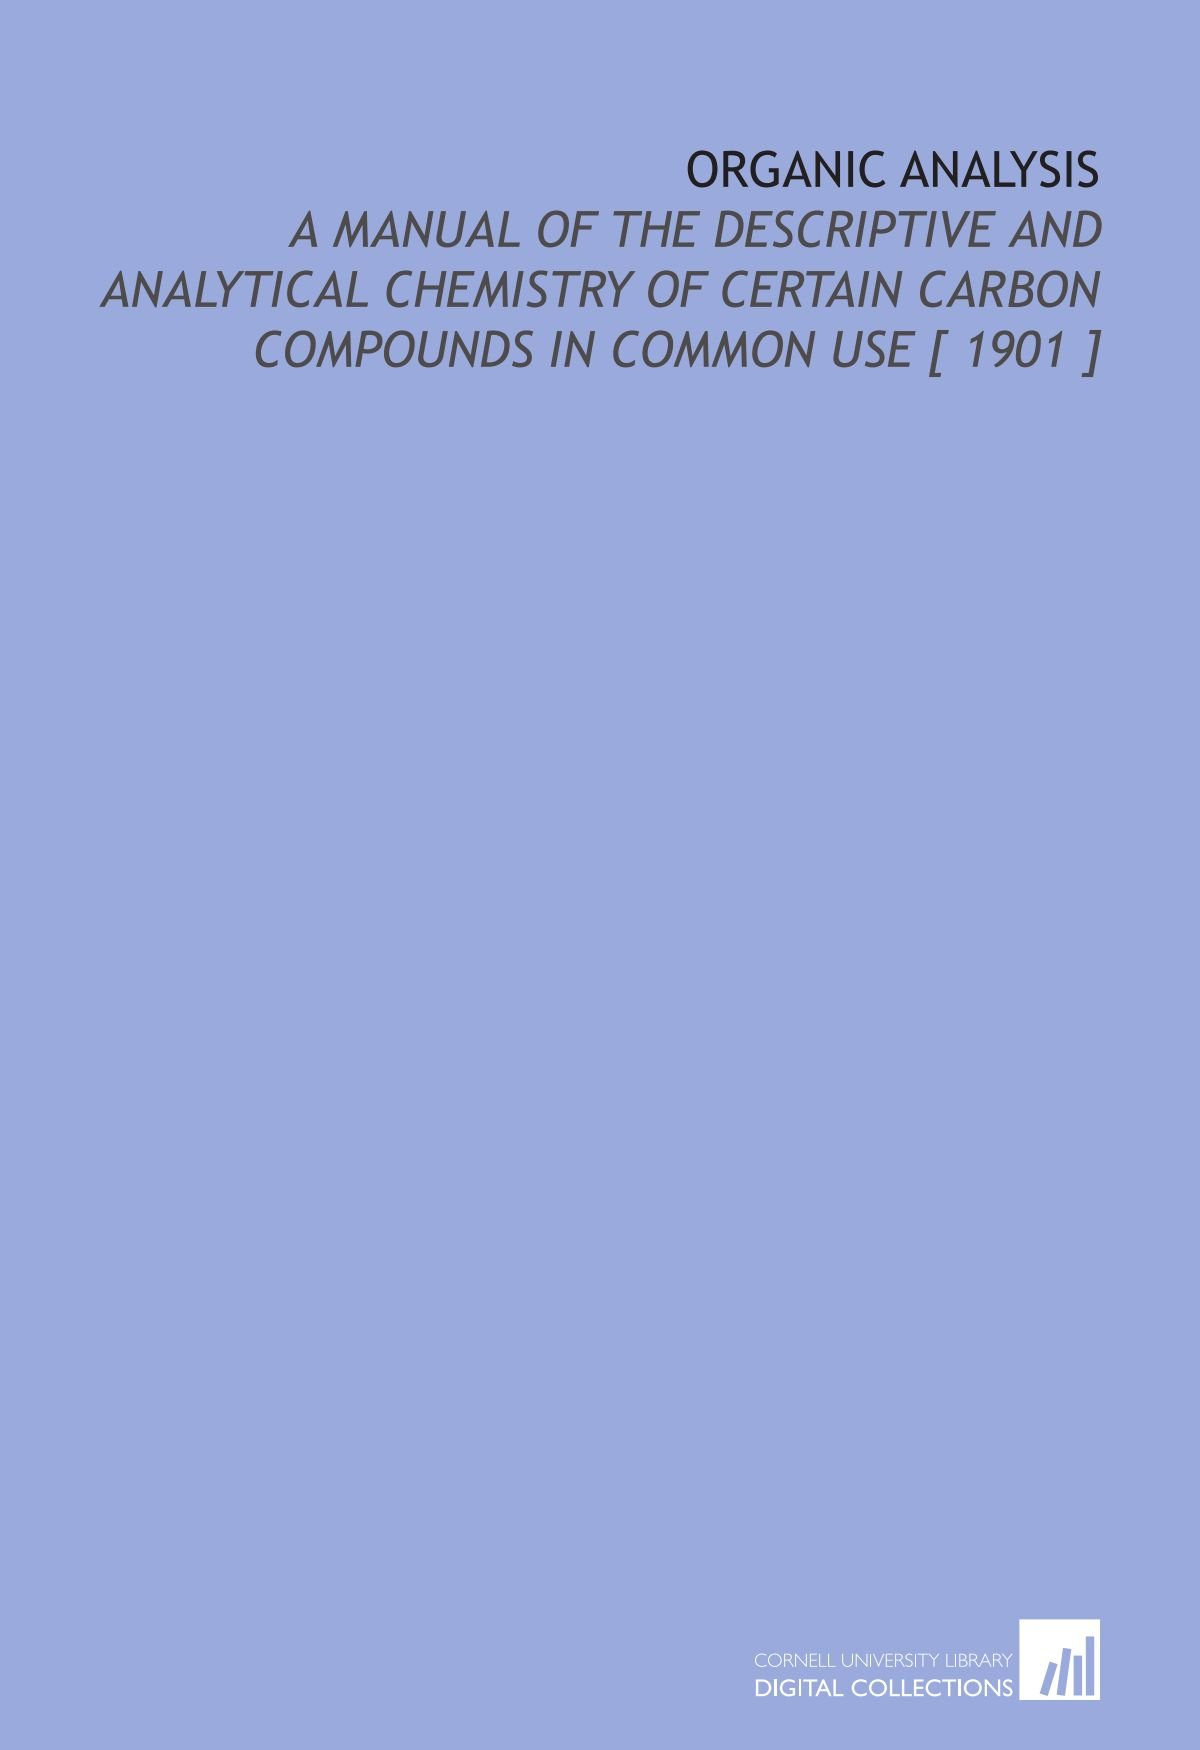 Download Organic Analysis: A Manual of the Descriptive and Analytical Chemistry of Certain Carbon Compounds in Common Use [ 1901 ] pdf epub